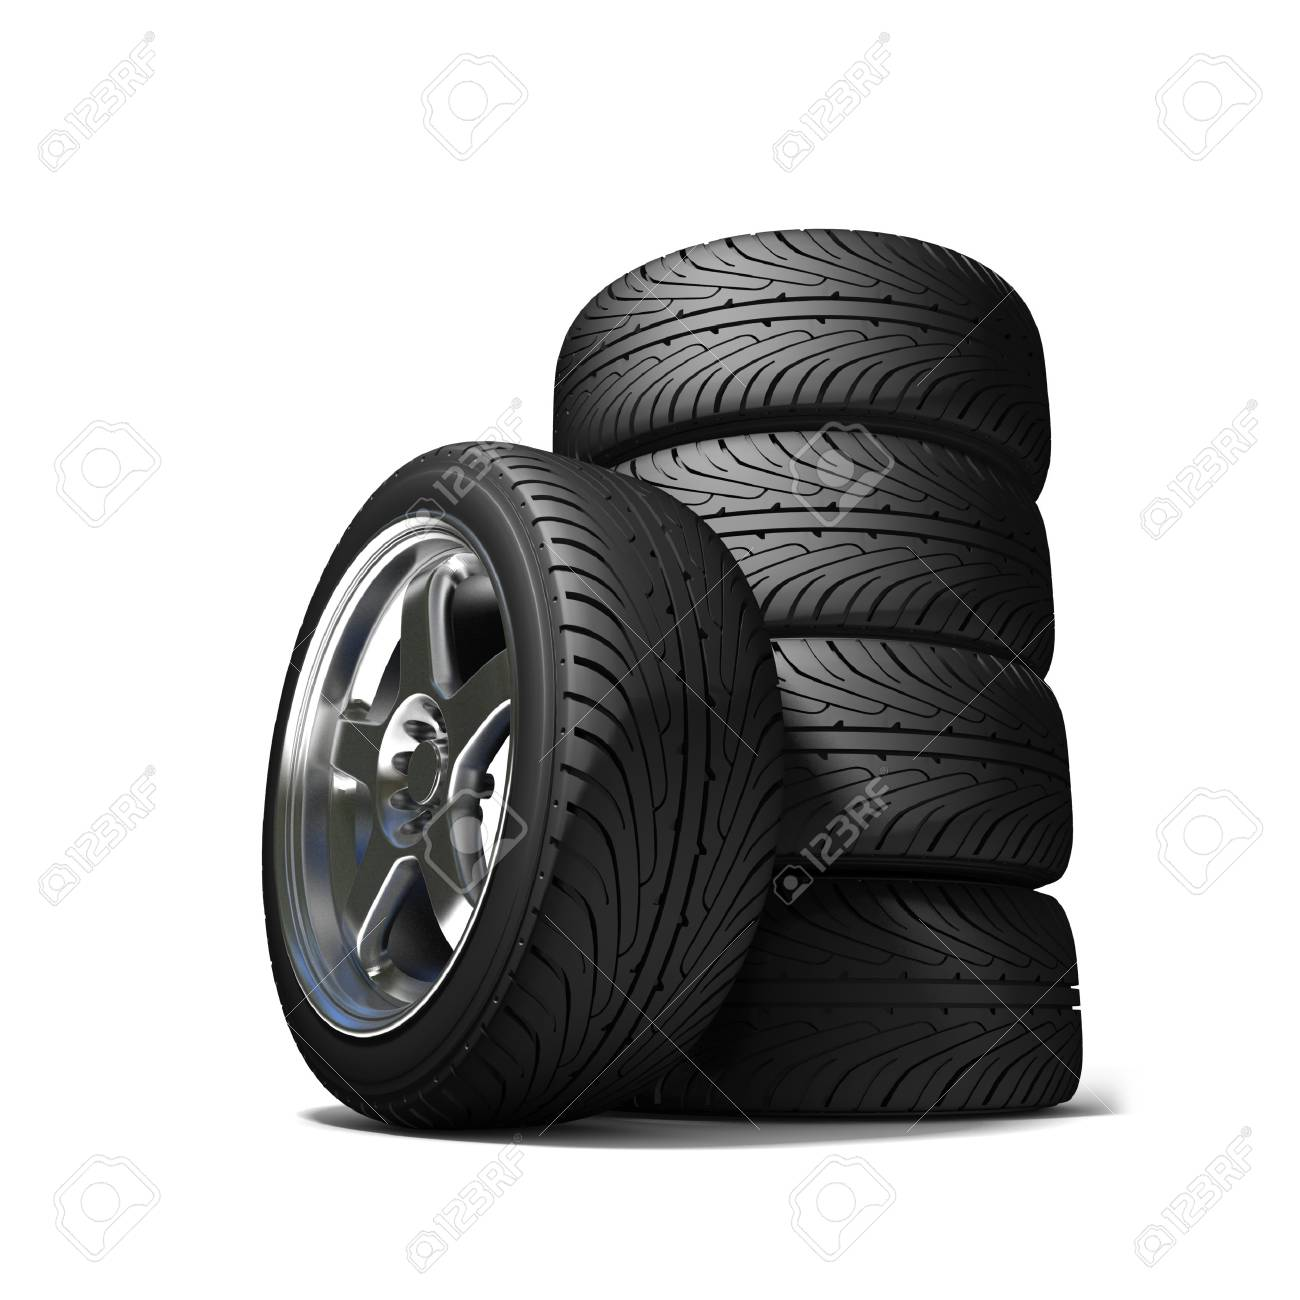 Wheels for the sports car Stock Photo - 7345545